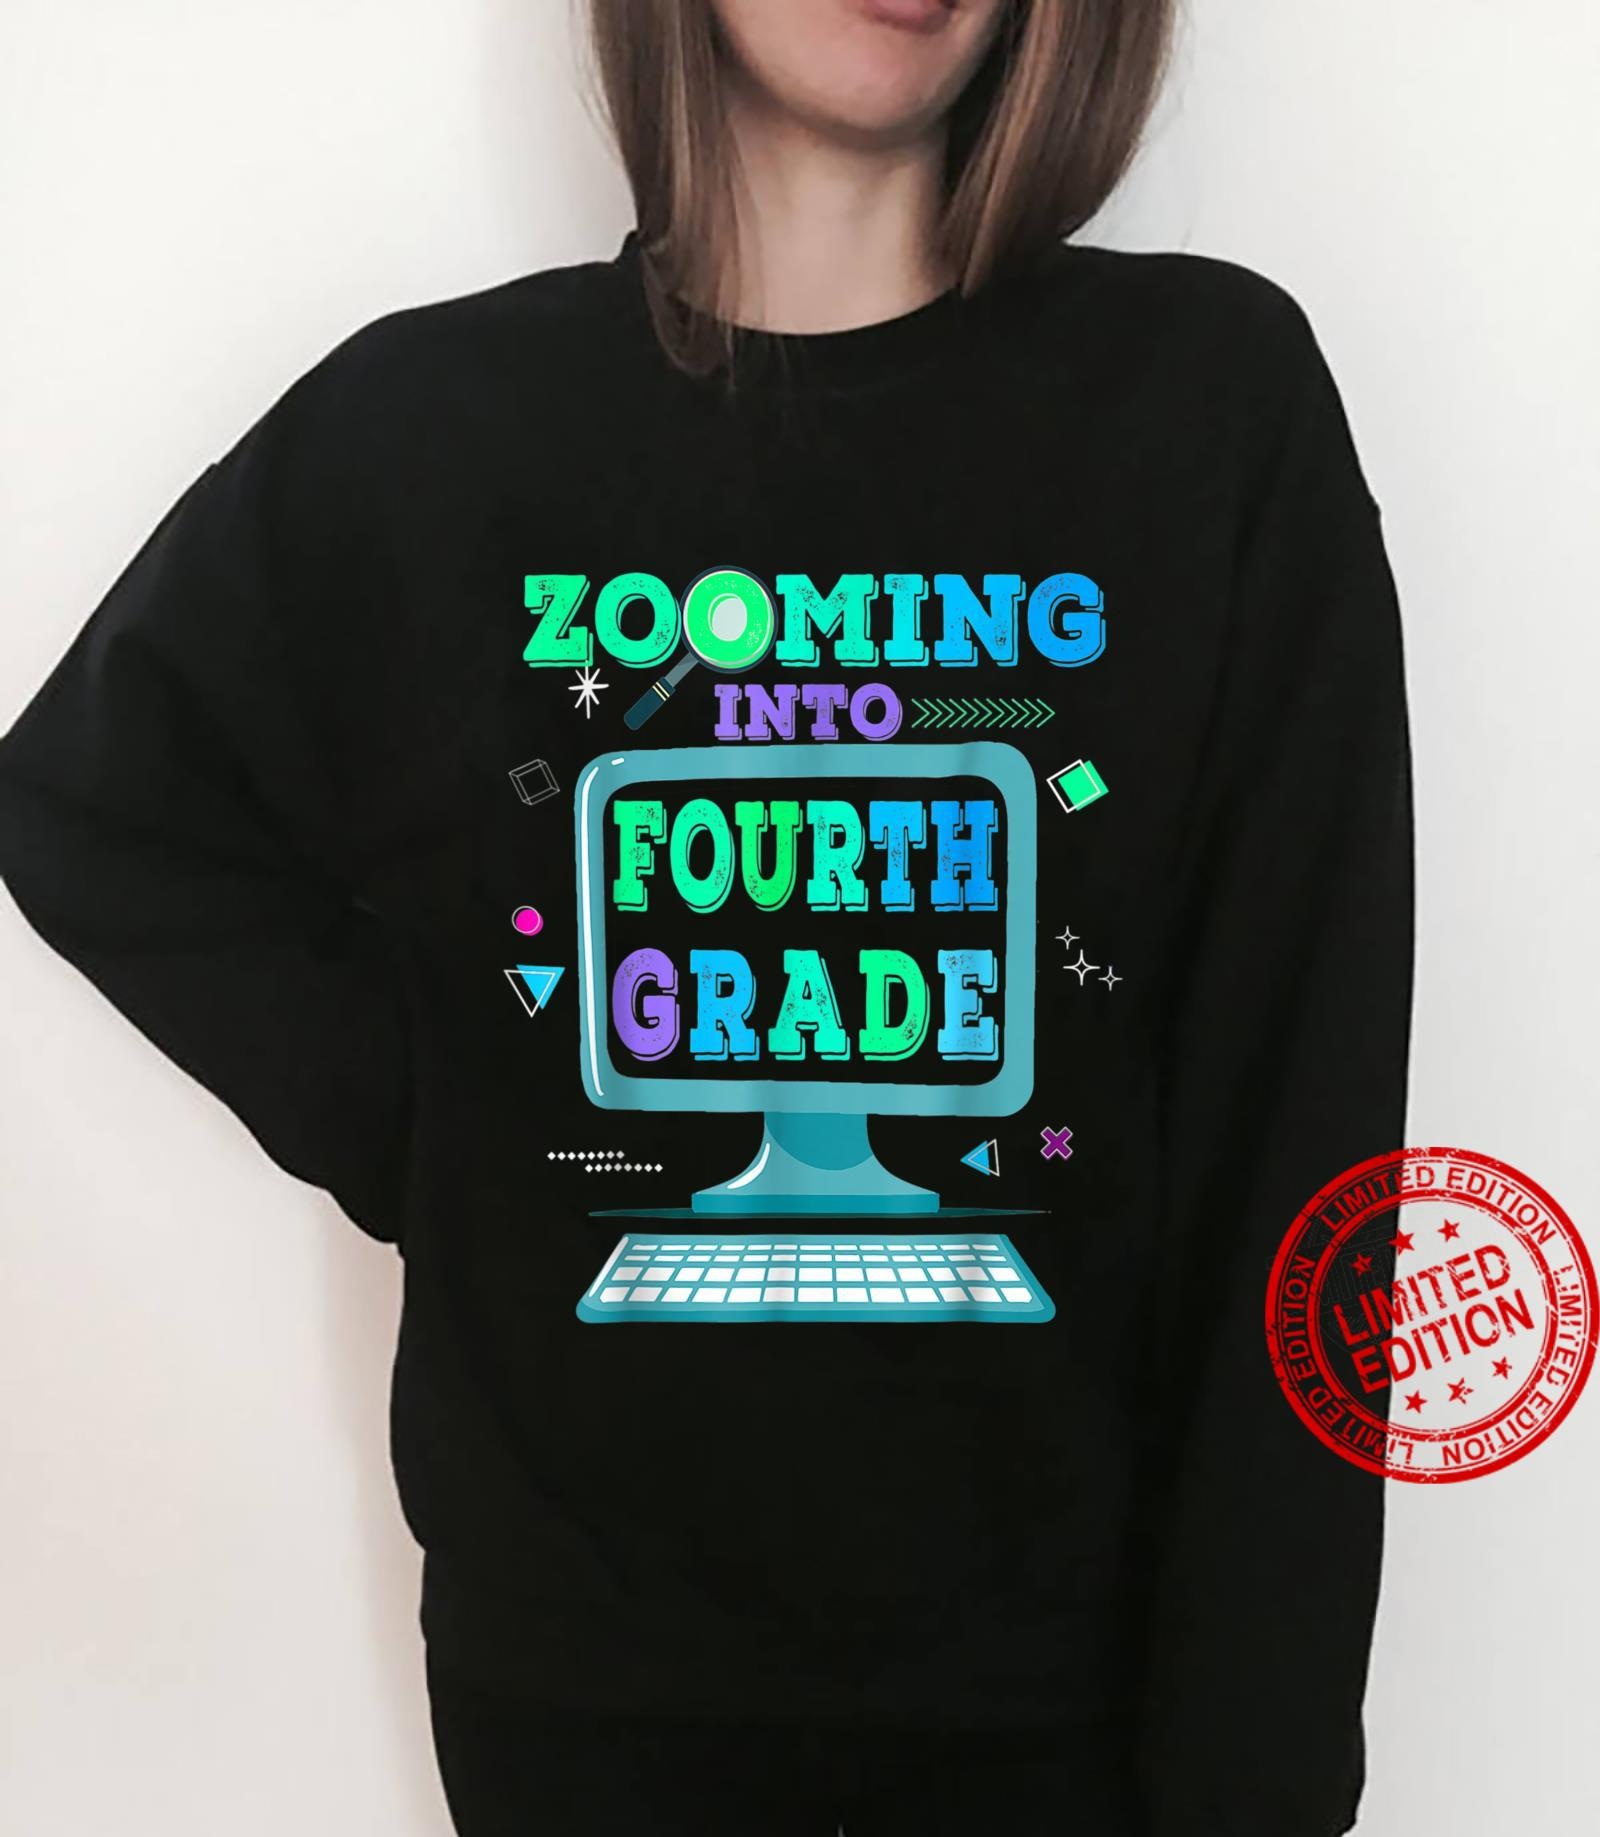 Zooming Into 4th Fourth Grade Virtual Back to School Shirt sweater